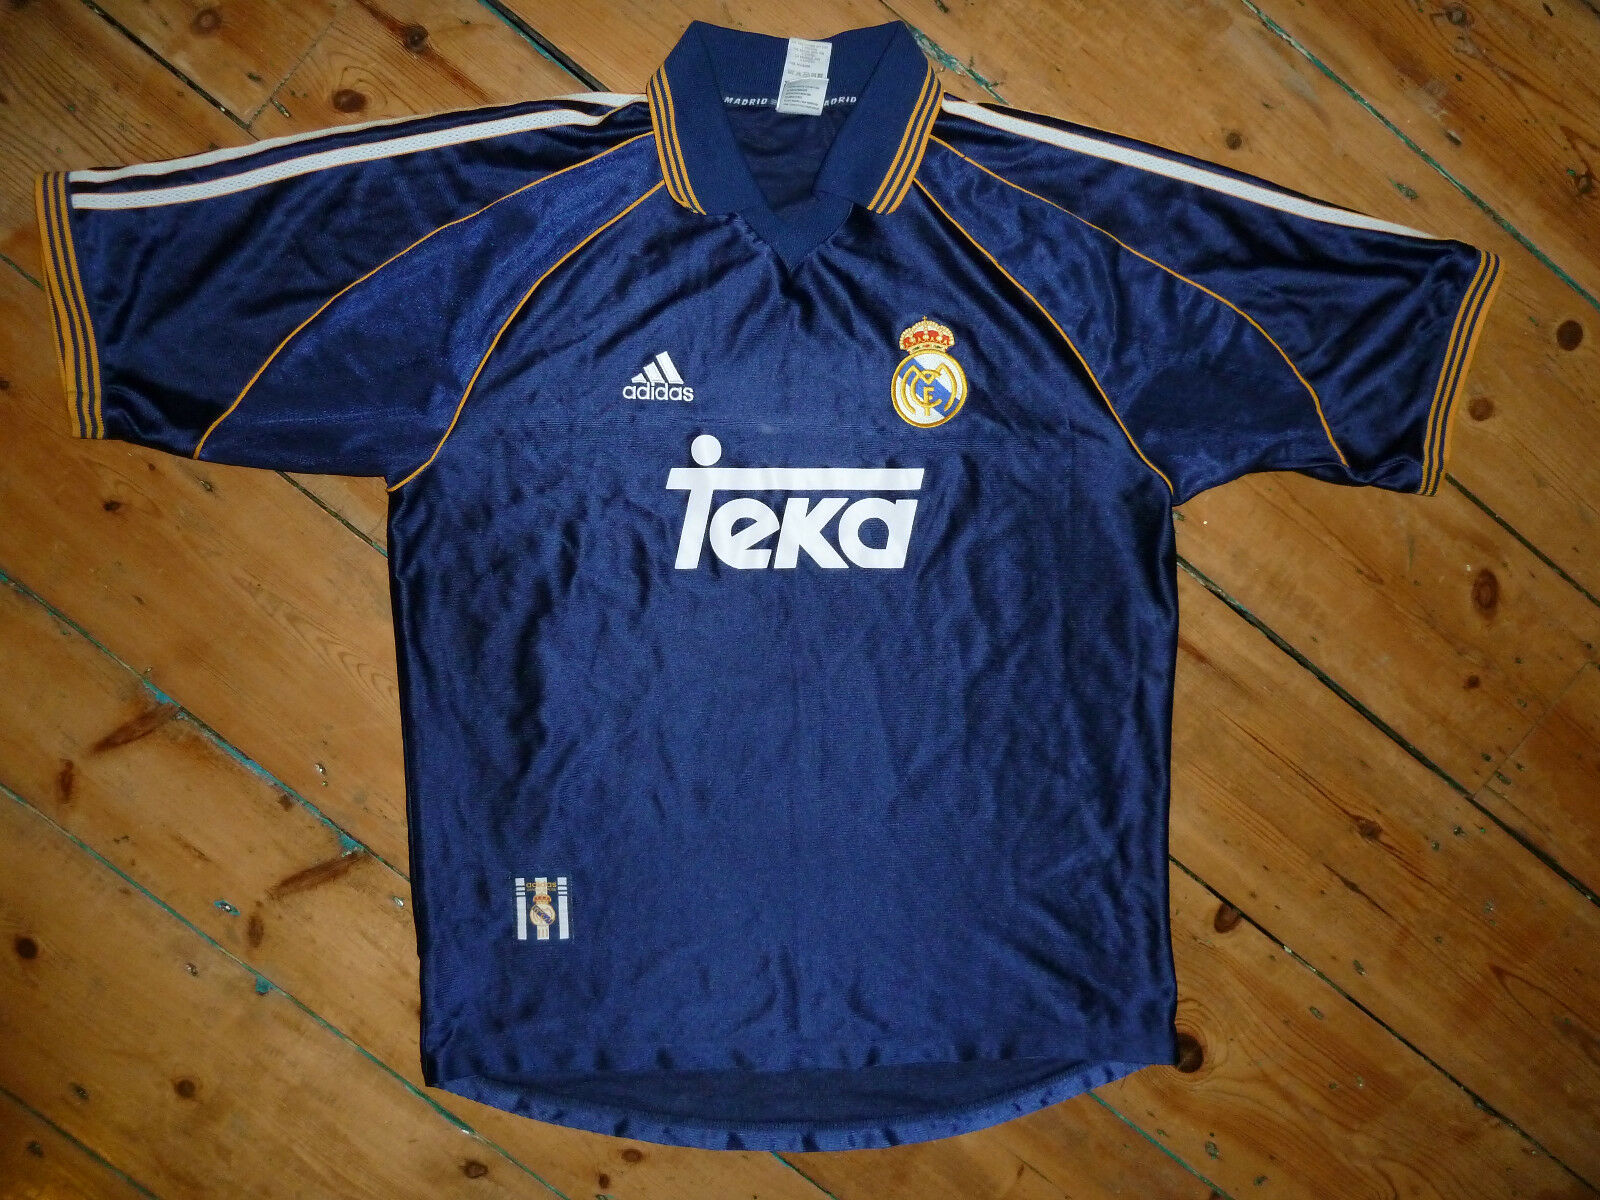 d5ee62099 Large REAL MADRID SHIRT 1998 Away 3rd FOOTBALL JERSEY SPAIN LA LIGA Raul  Era Top